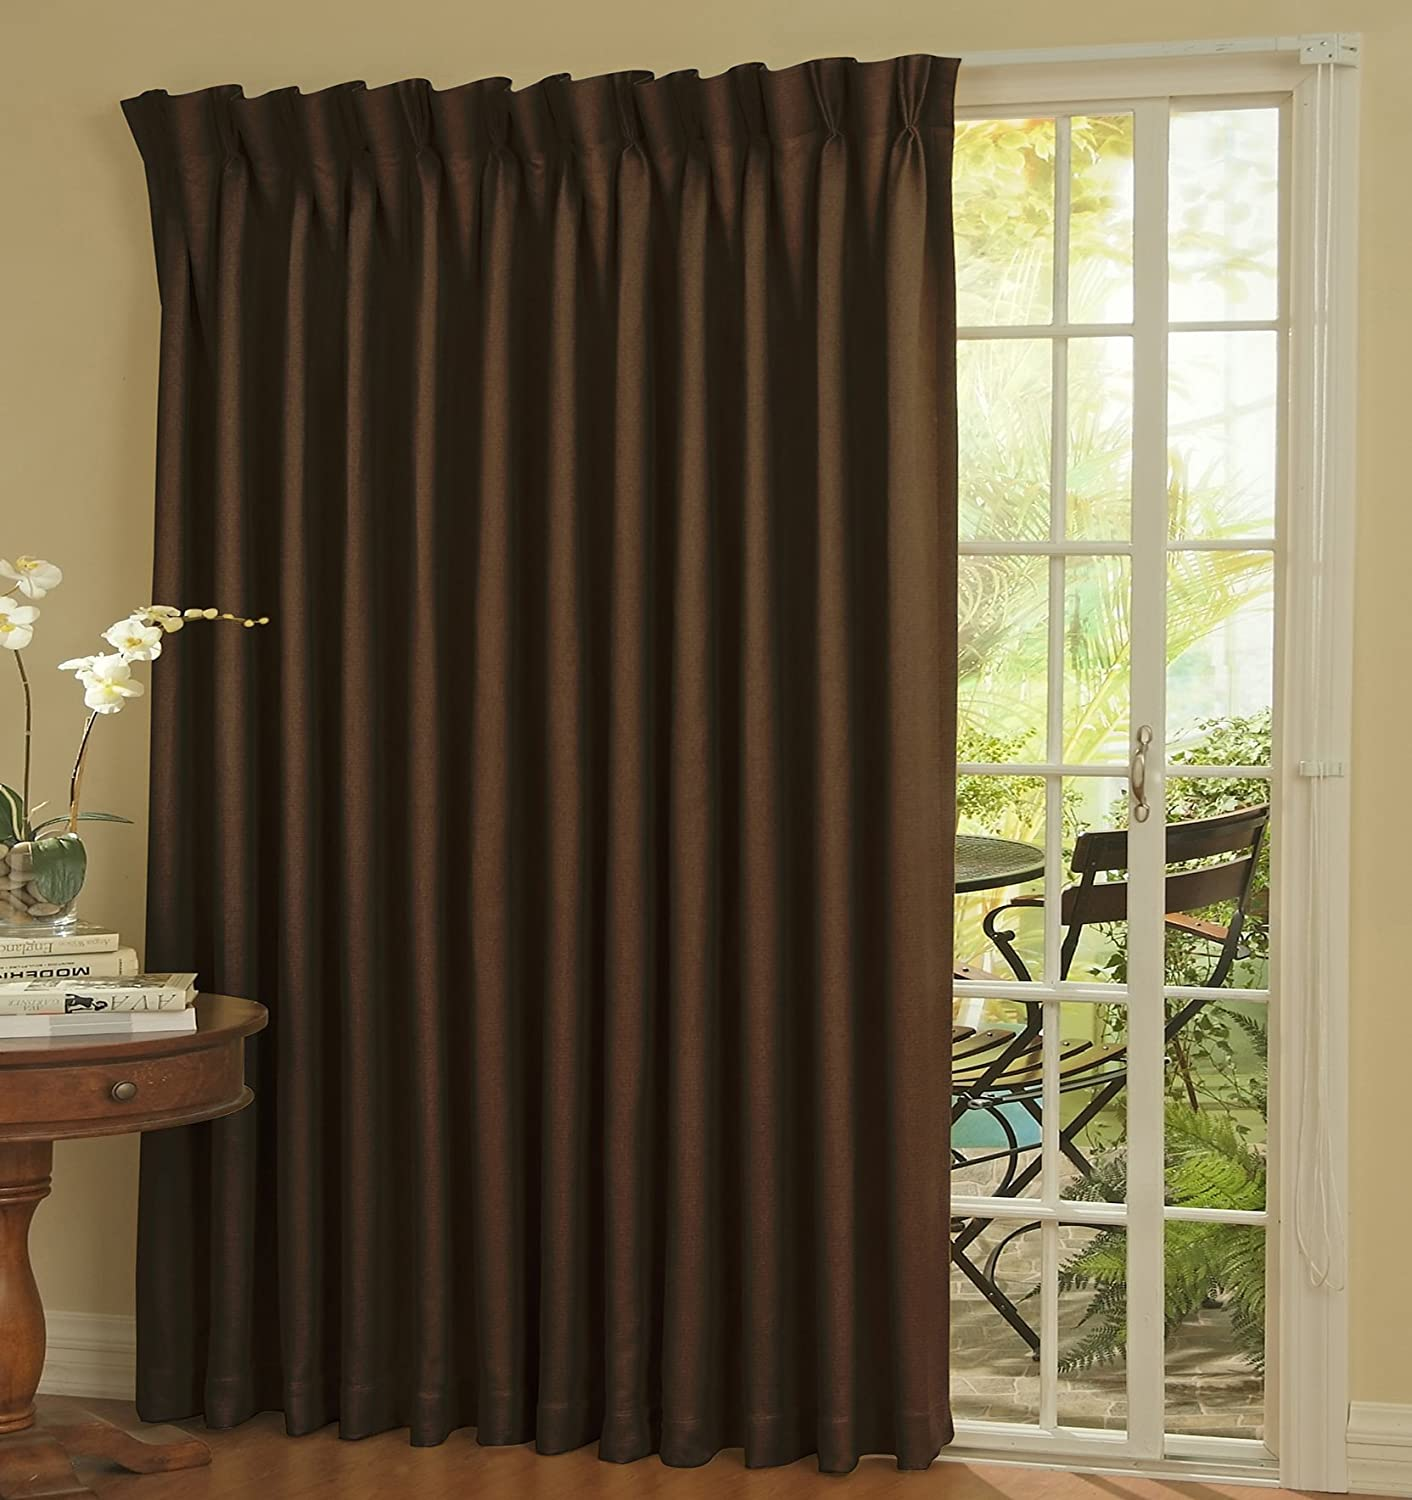 valances salem amazon x door bathroom fashions blinds lorraine home window com thermal inch curtains curtain t